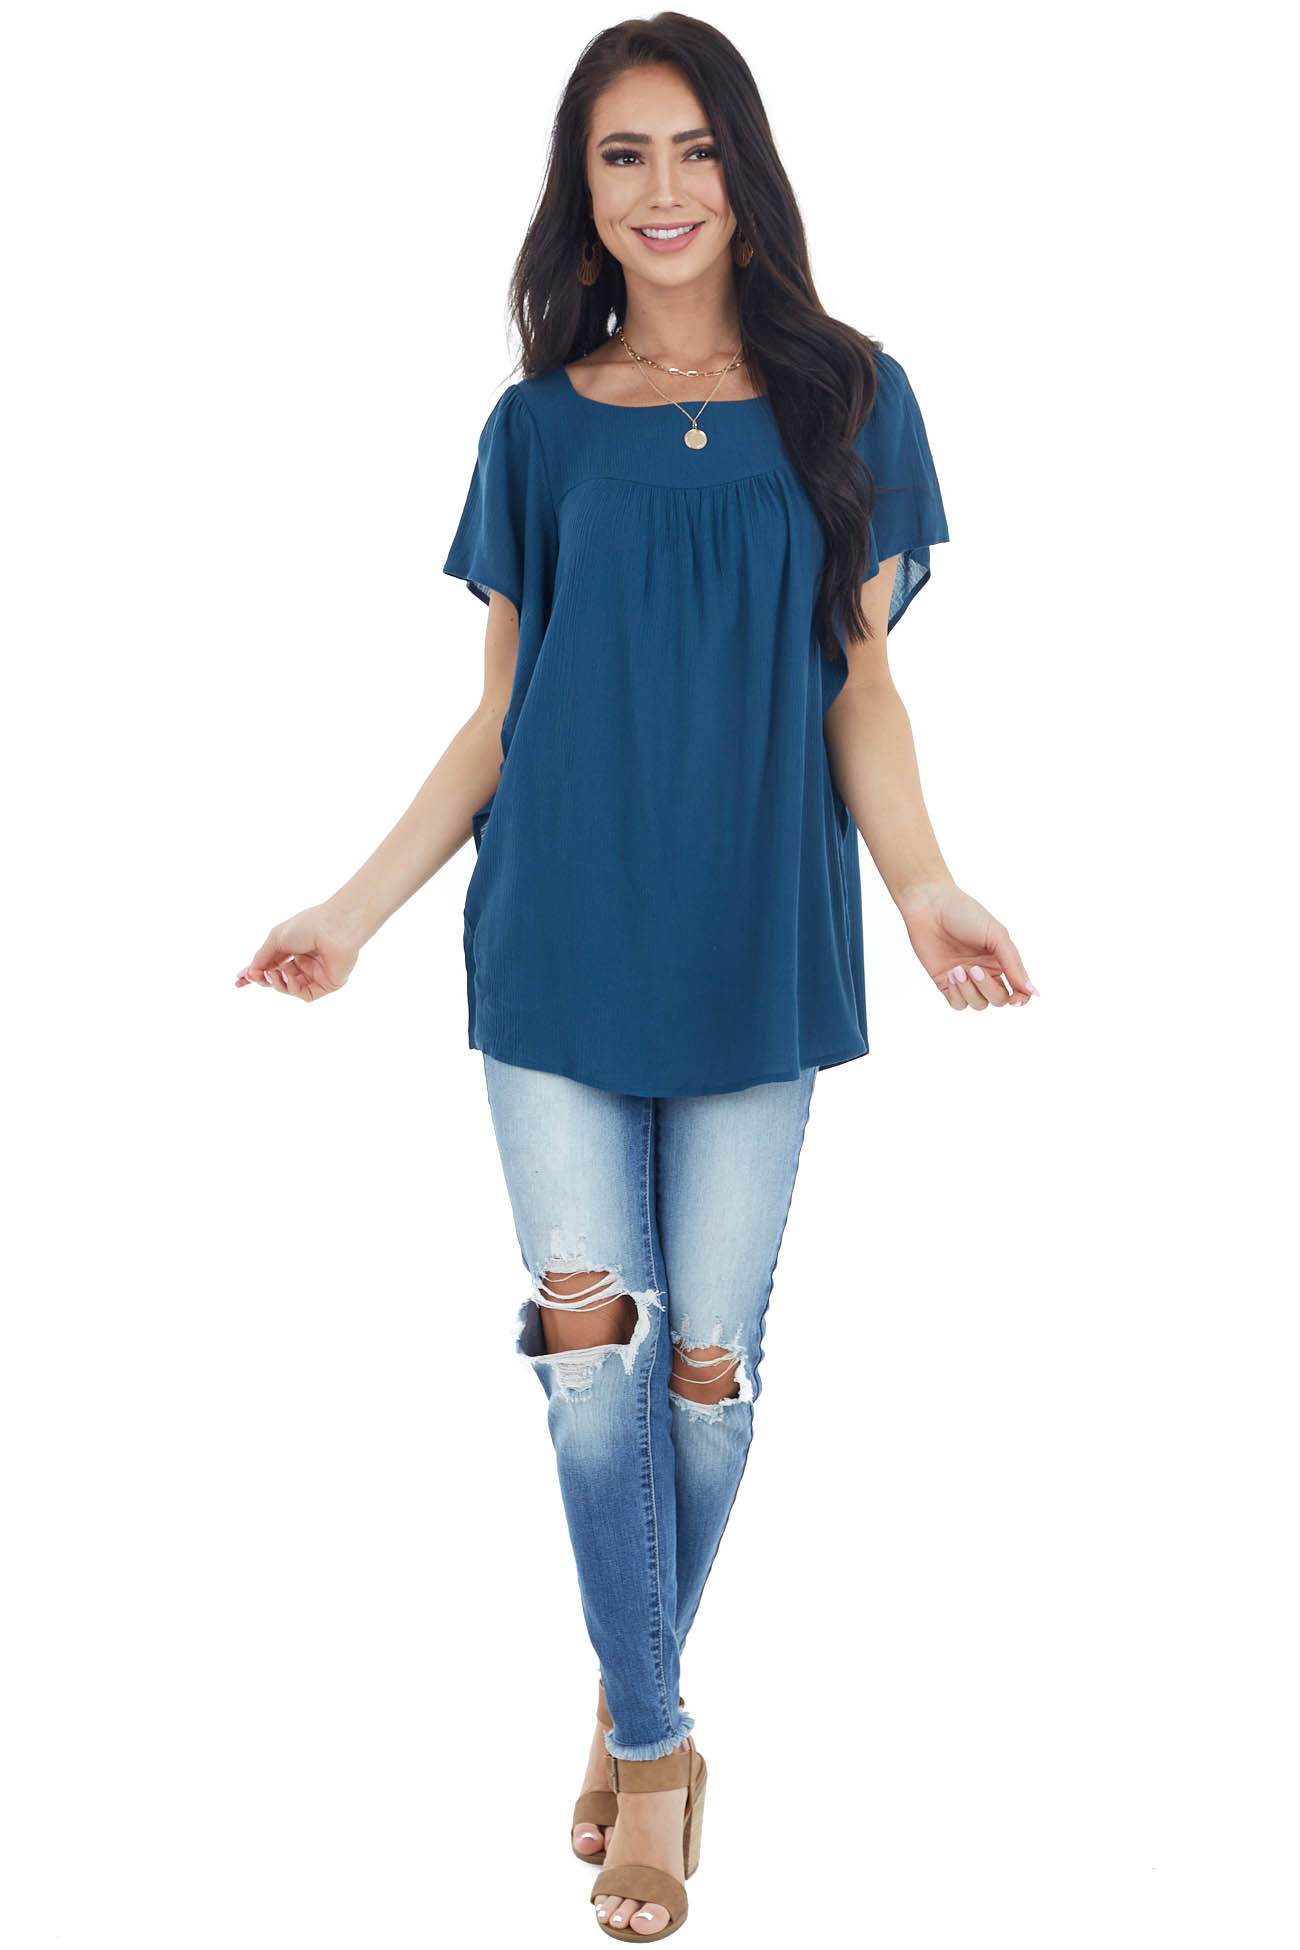 Dark Teal Woven Top with Short Batwing Sleeves